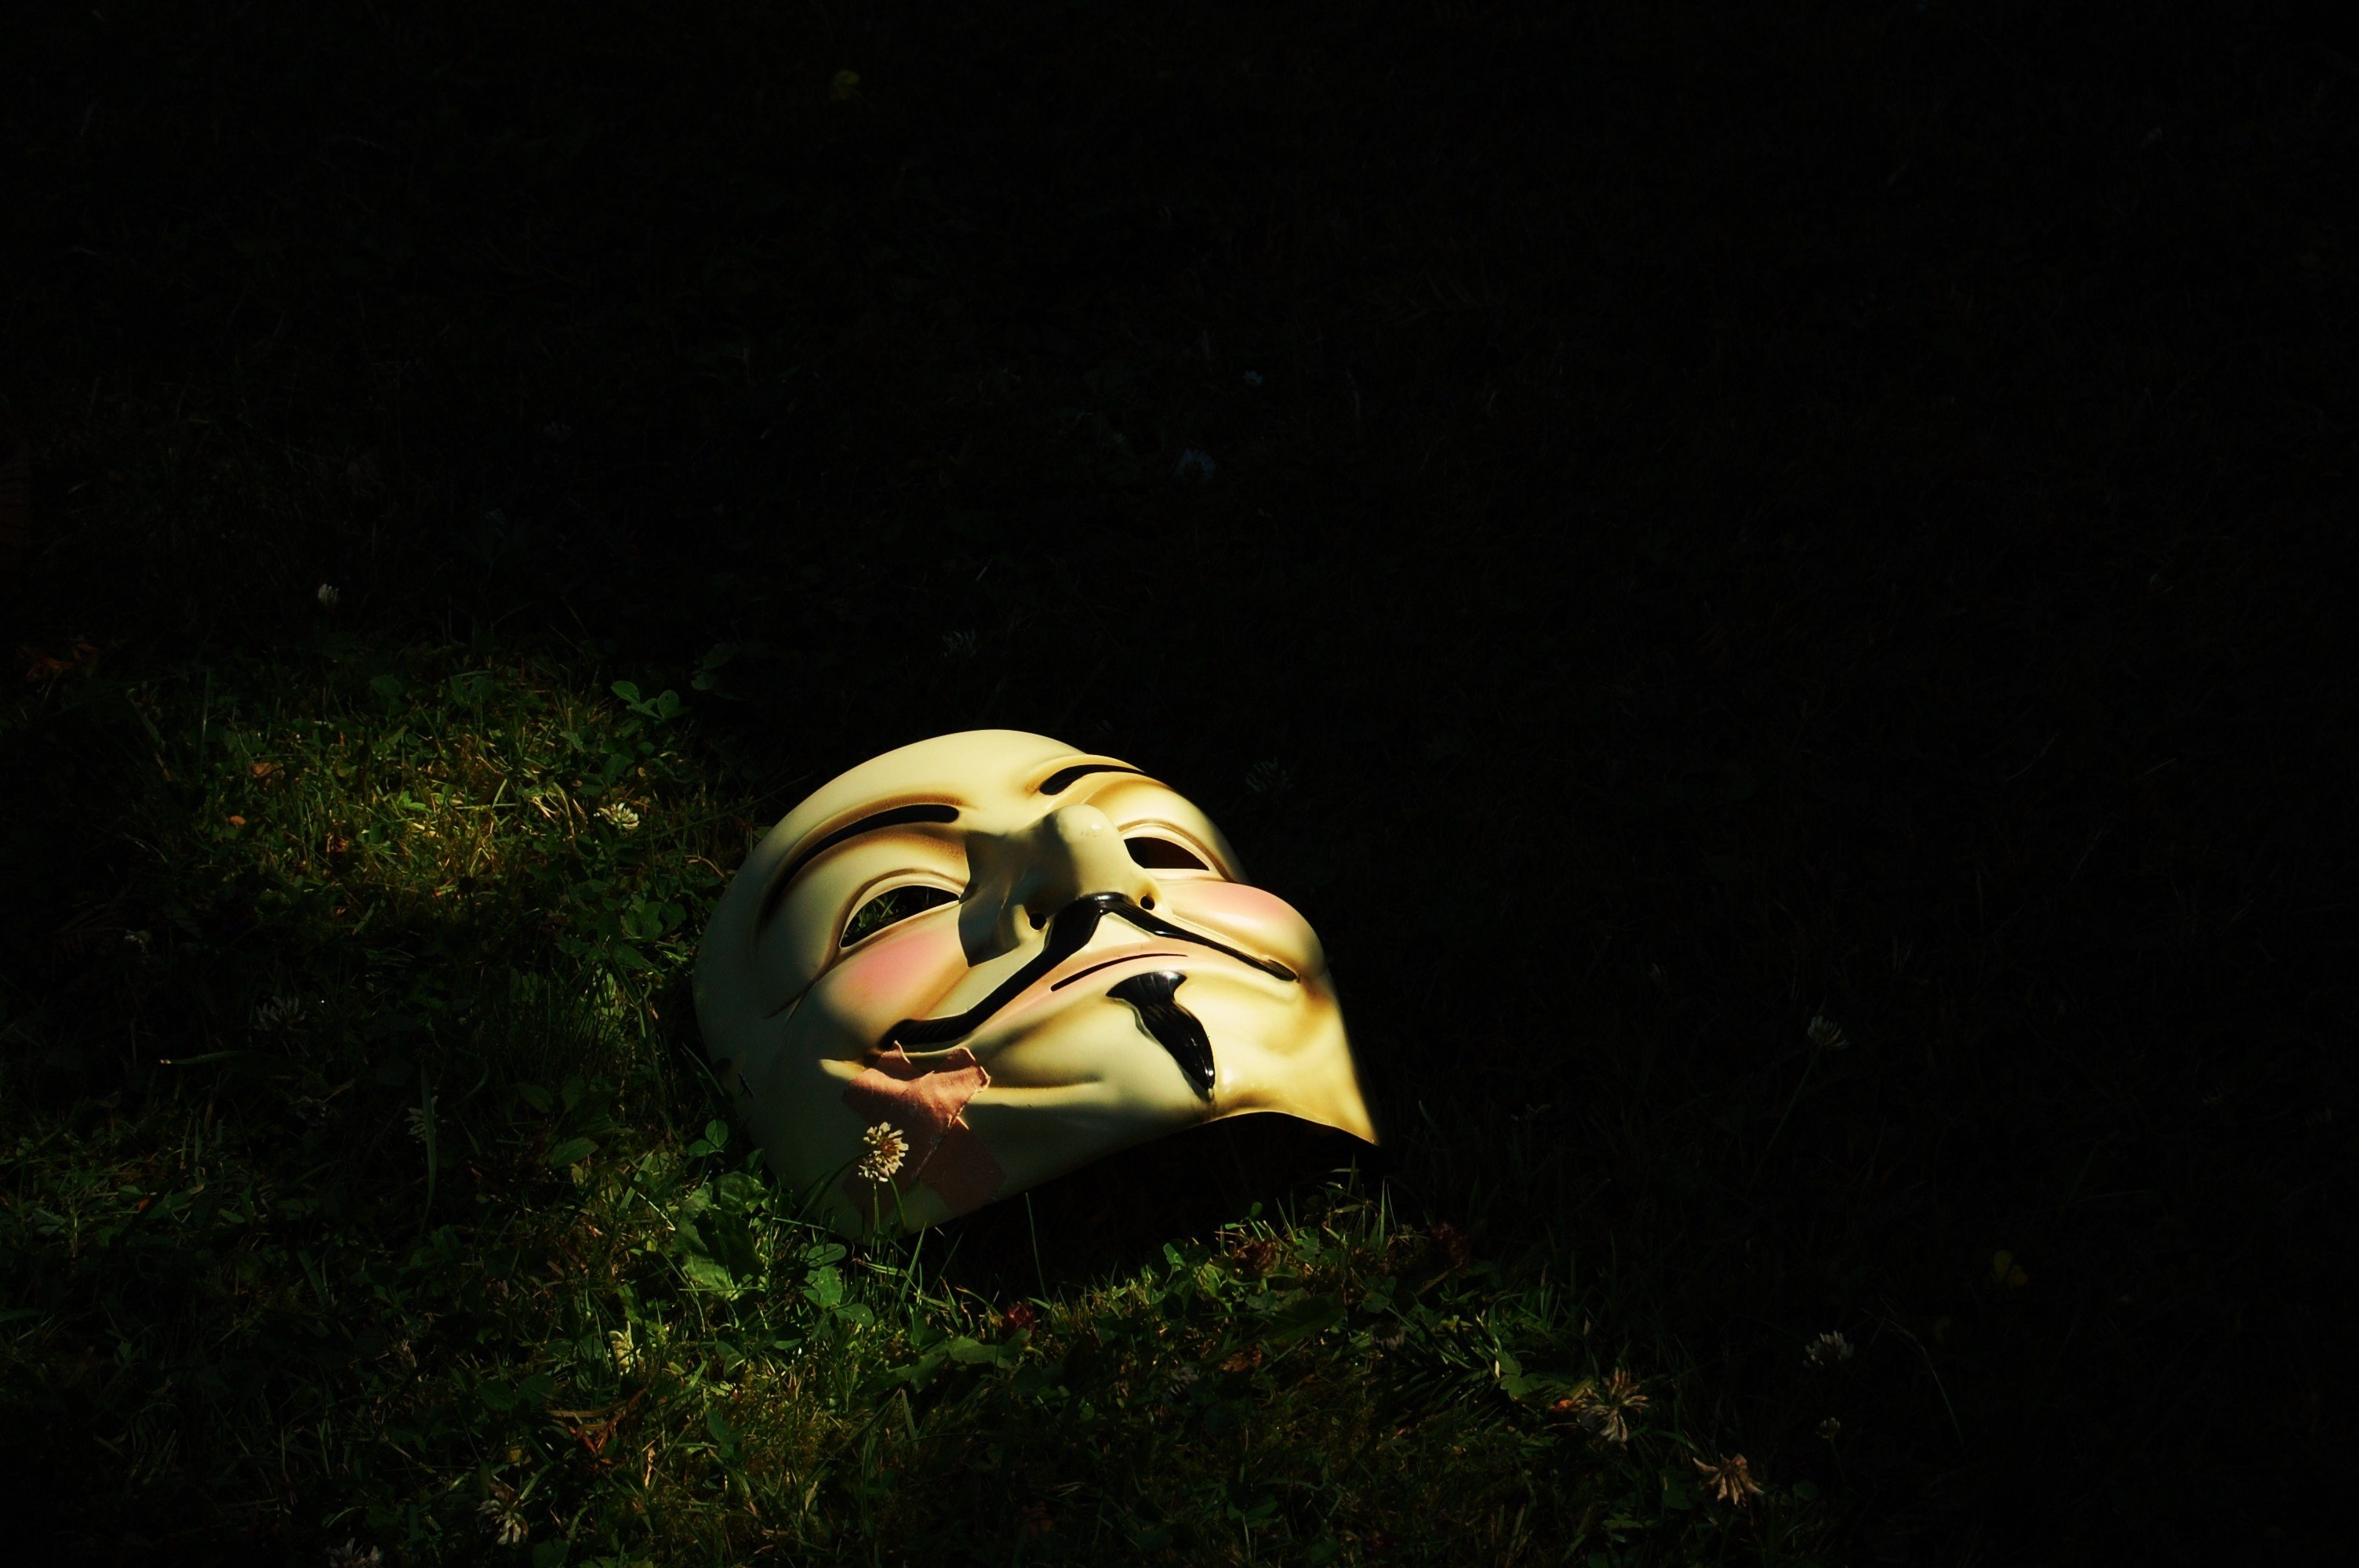 Anonymous Mask Wallpaper 3d Hacking Hackers Hd Wallpapers Desktop And Mobile Images